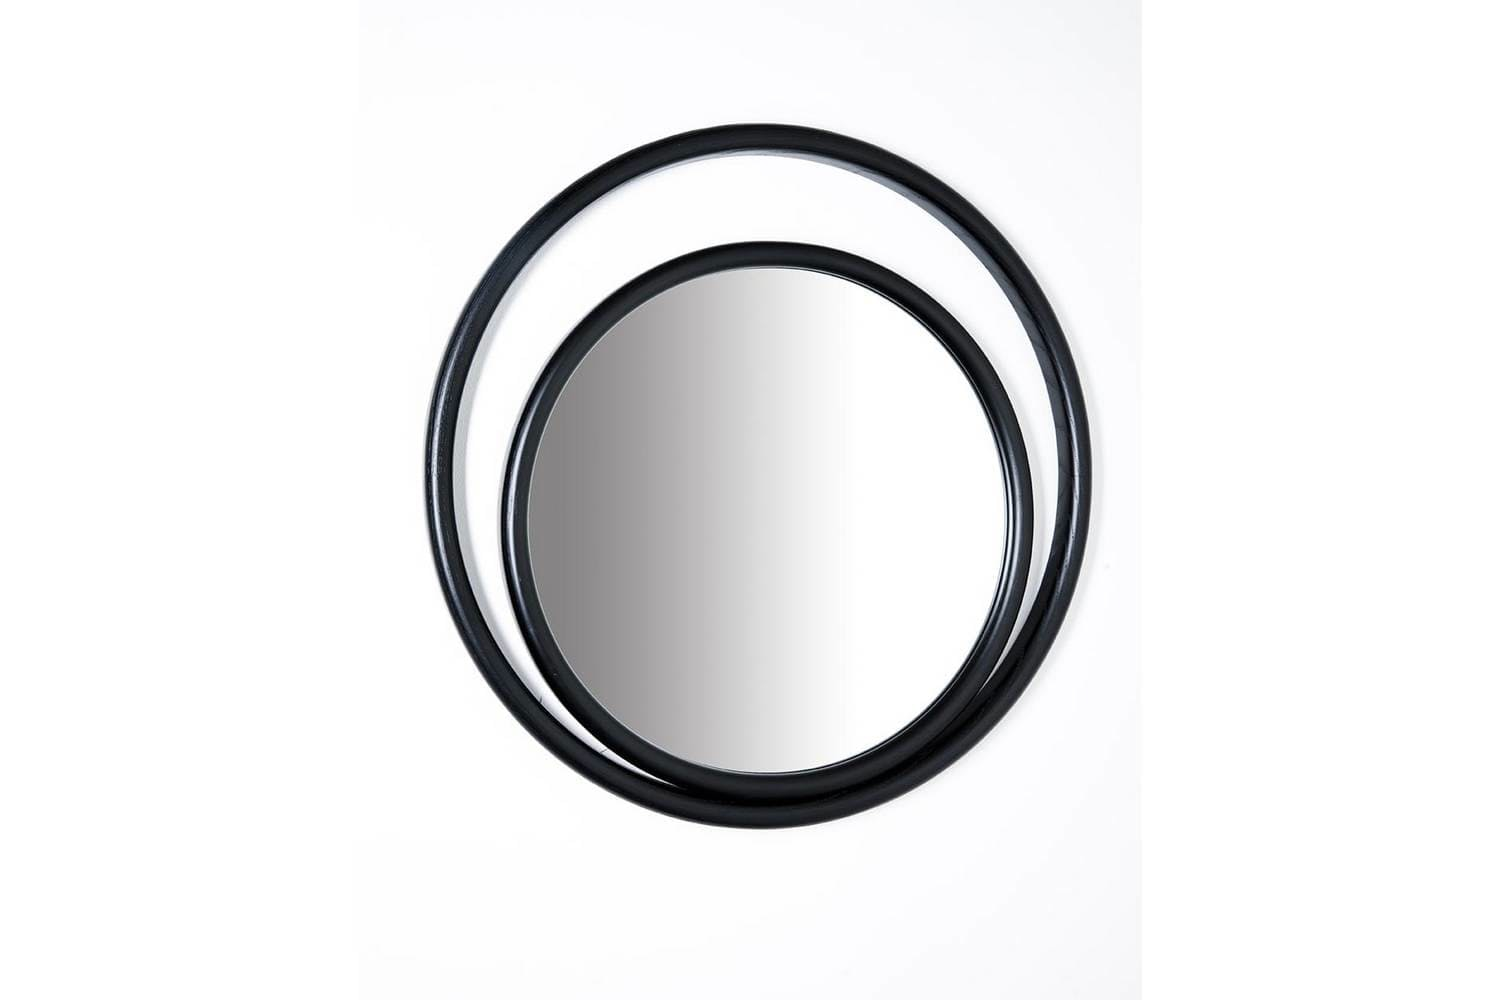 Eyeshine Small Circular Mirror by Anki Gneib for Gebruder Thonet Vienna GmbH